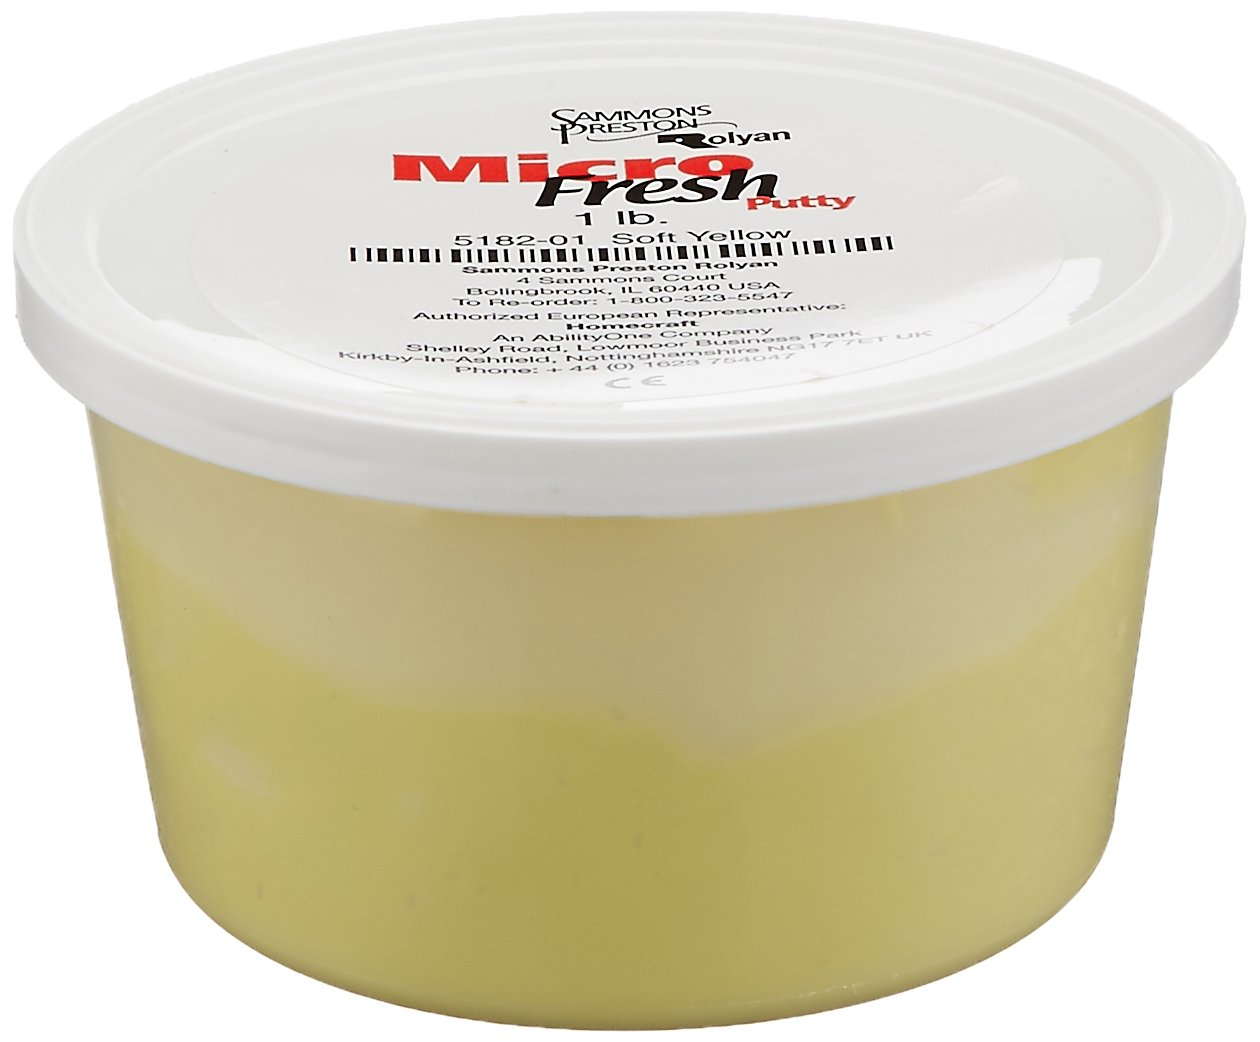 Sammons Preston Micro-Fresh Putty, Antibacterial, Antifungal, and Antimicrobial Therapy Putty for Hands and Feet Exercises, Color Coded Non-Toxic Clay, Soft Yellow, 1 Pound